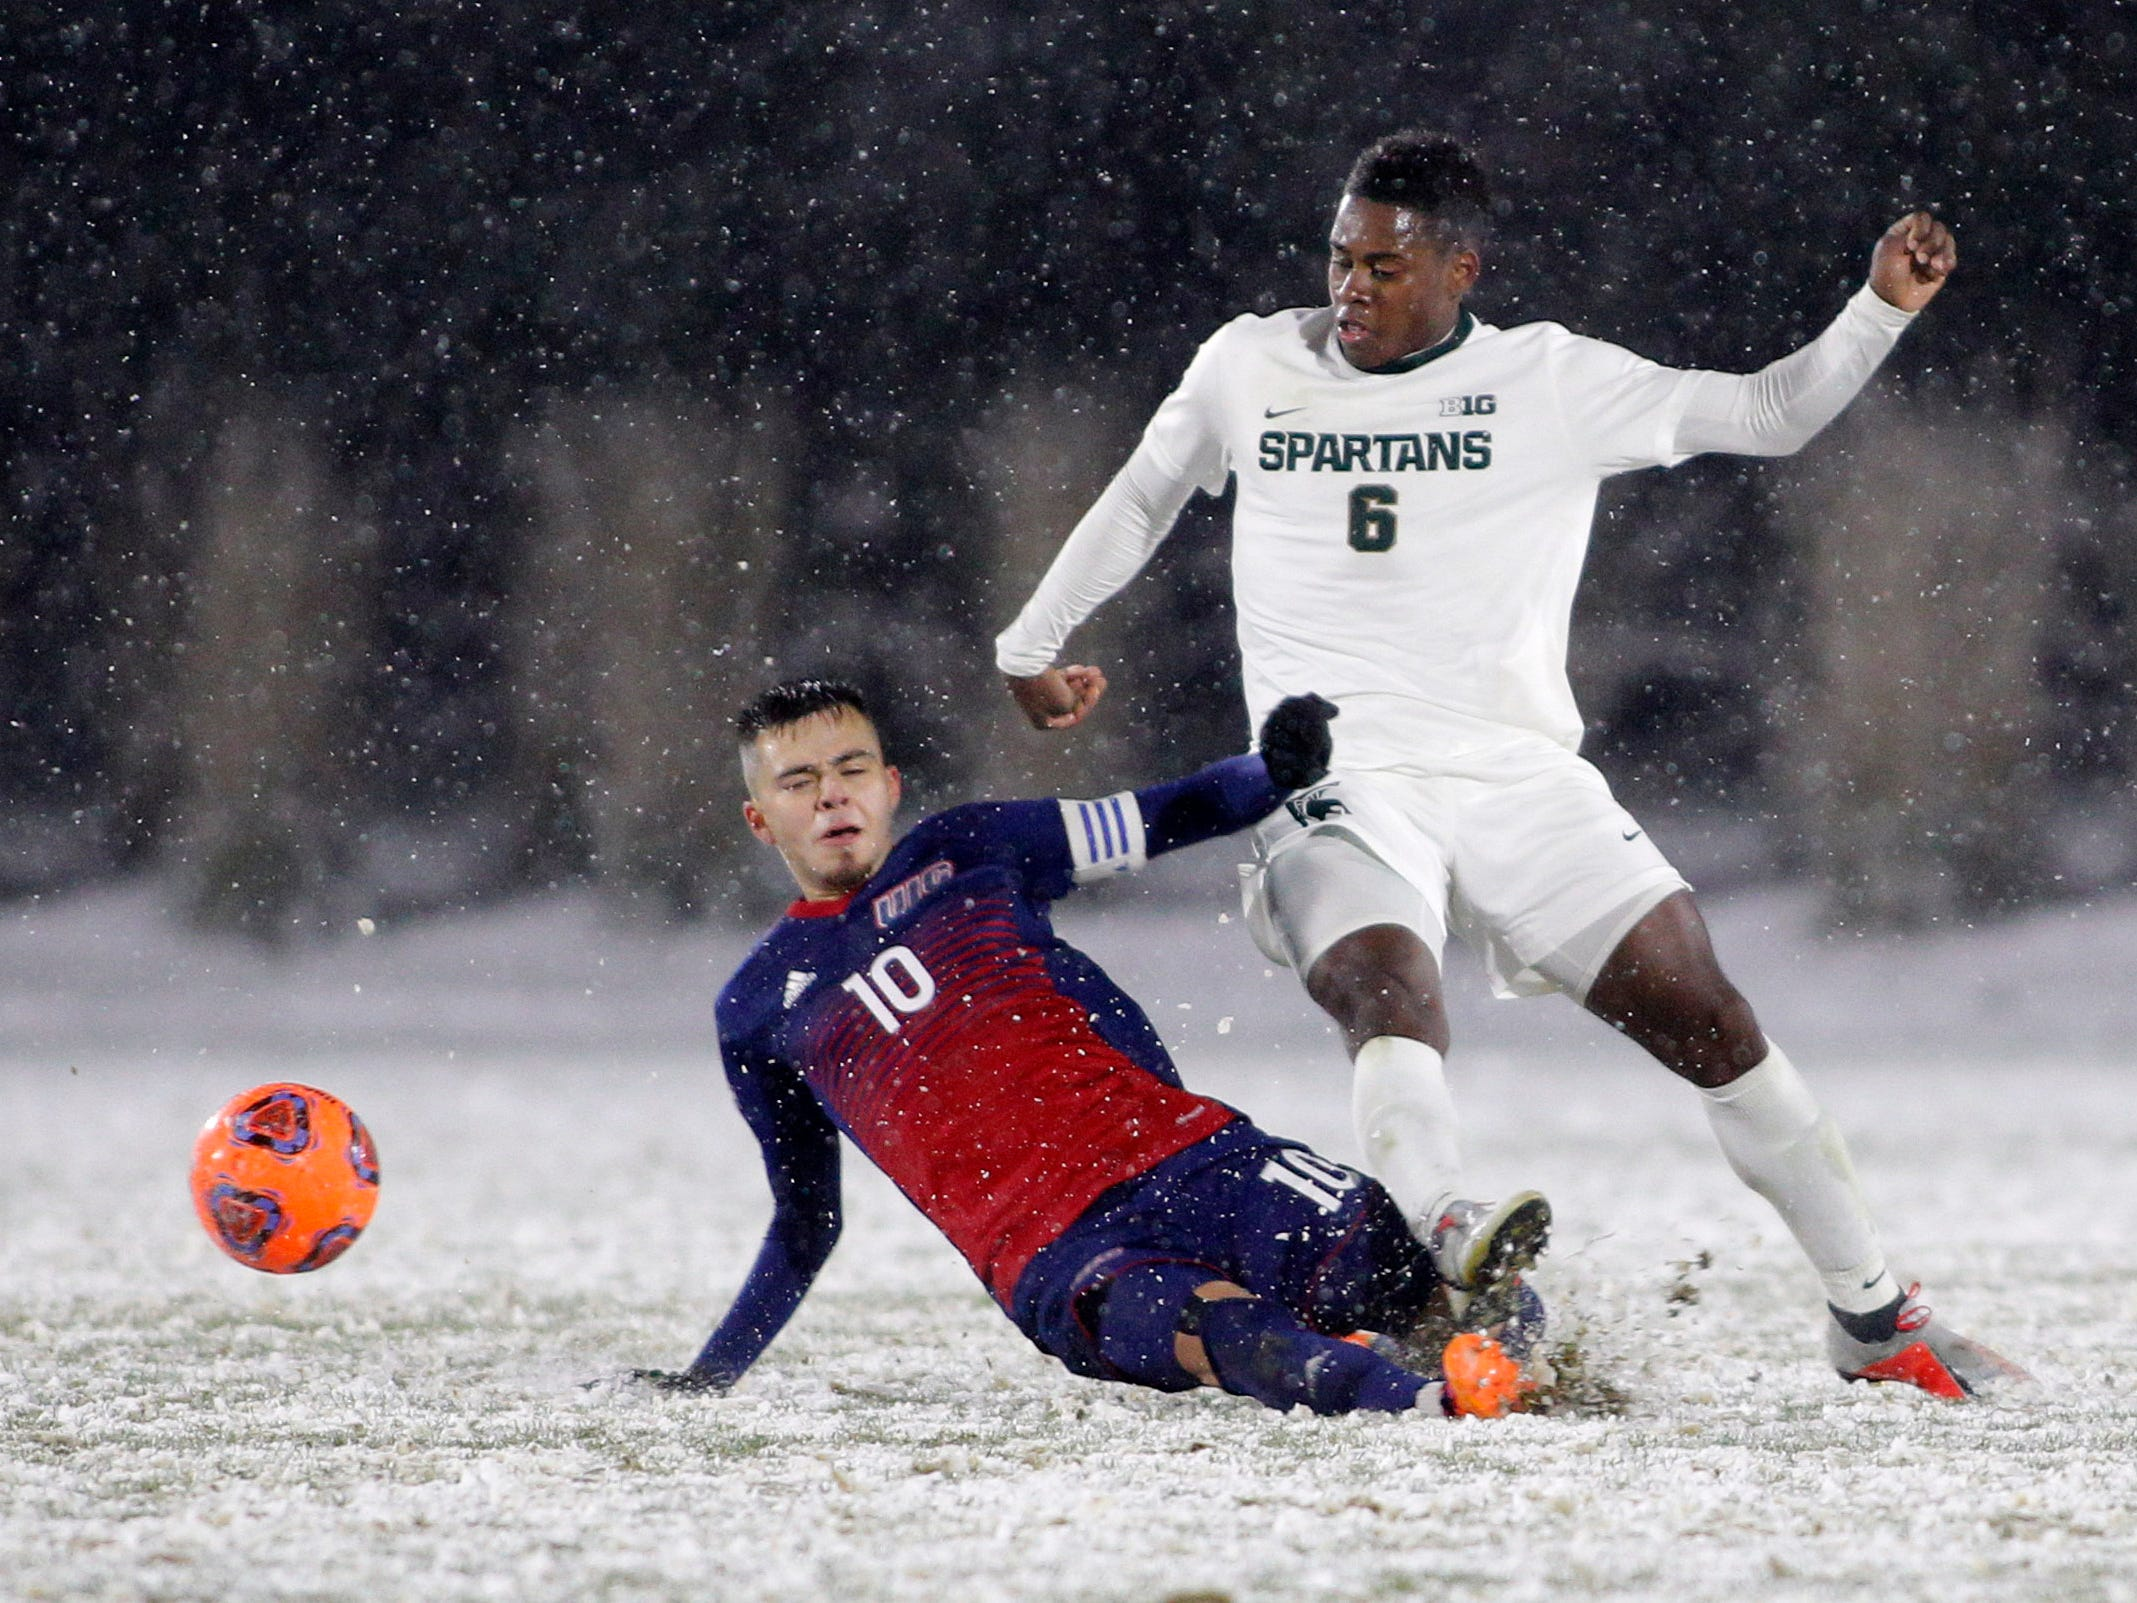 Michigan State's DeJuan Jones, right, is undercut by Illinois-Chicago's Nestor Garcia during their NCAA first round game, Thursday, Nov. 15, 2018, at DeMartin Stadium in East Lansing, Mich. MSU won 2-0.